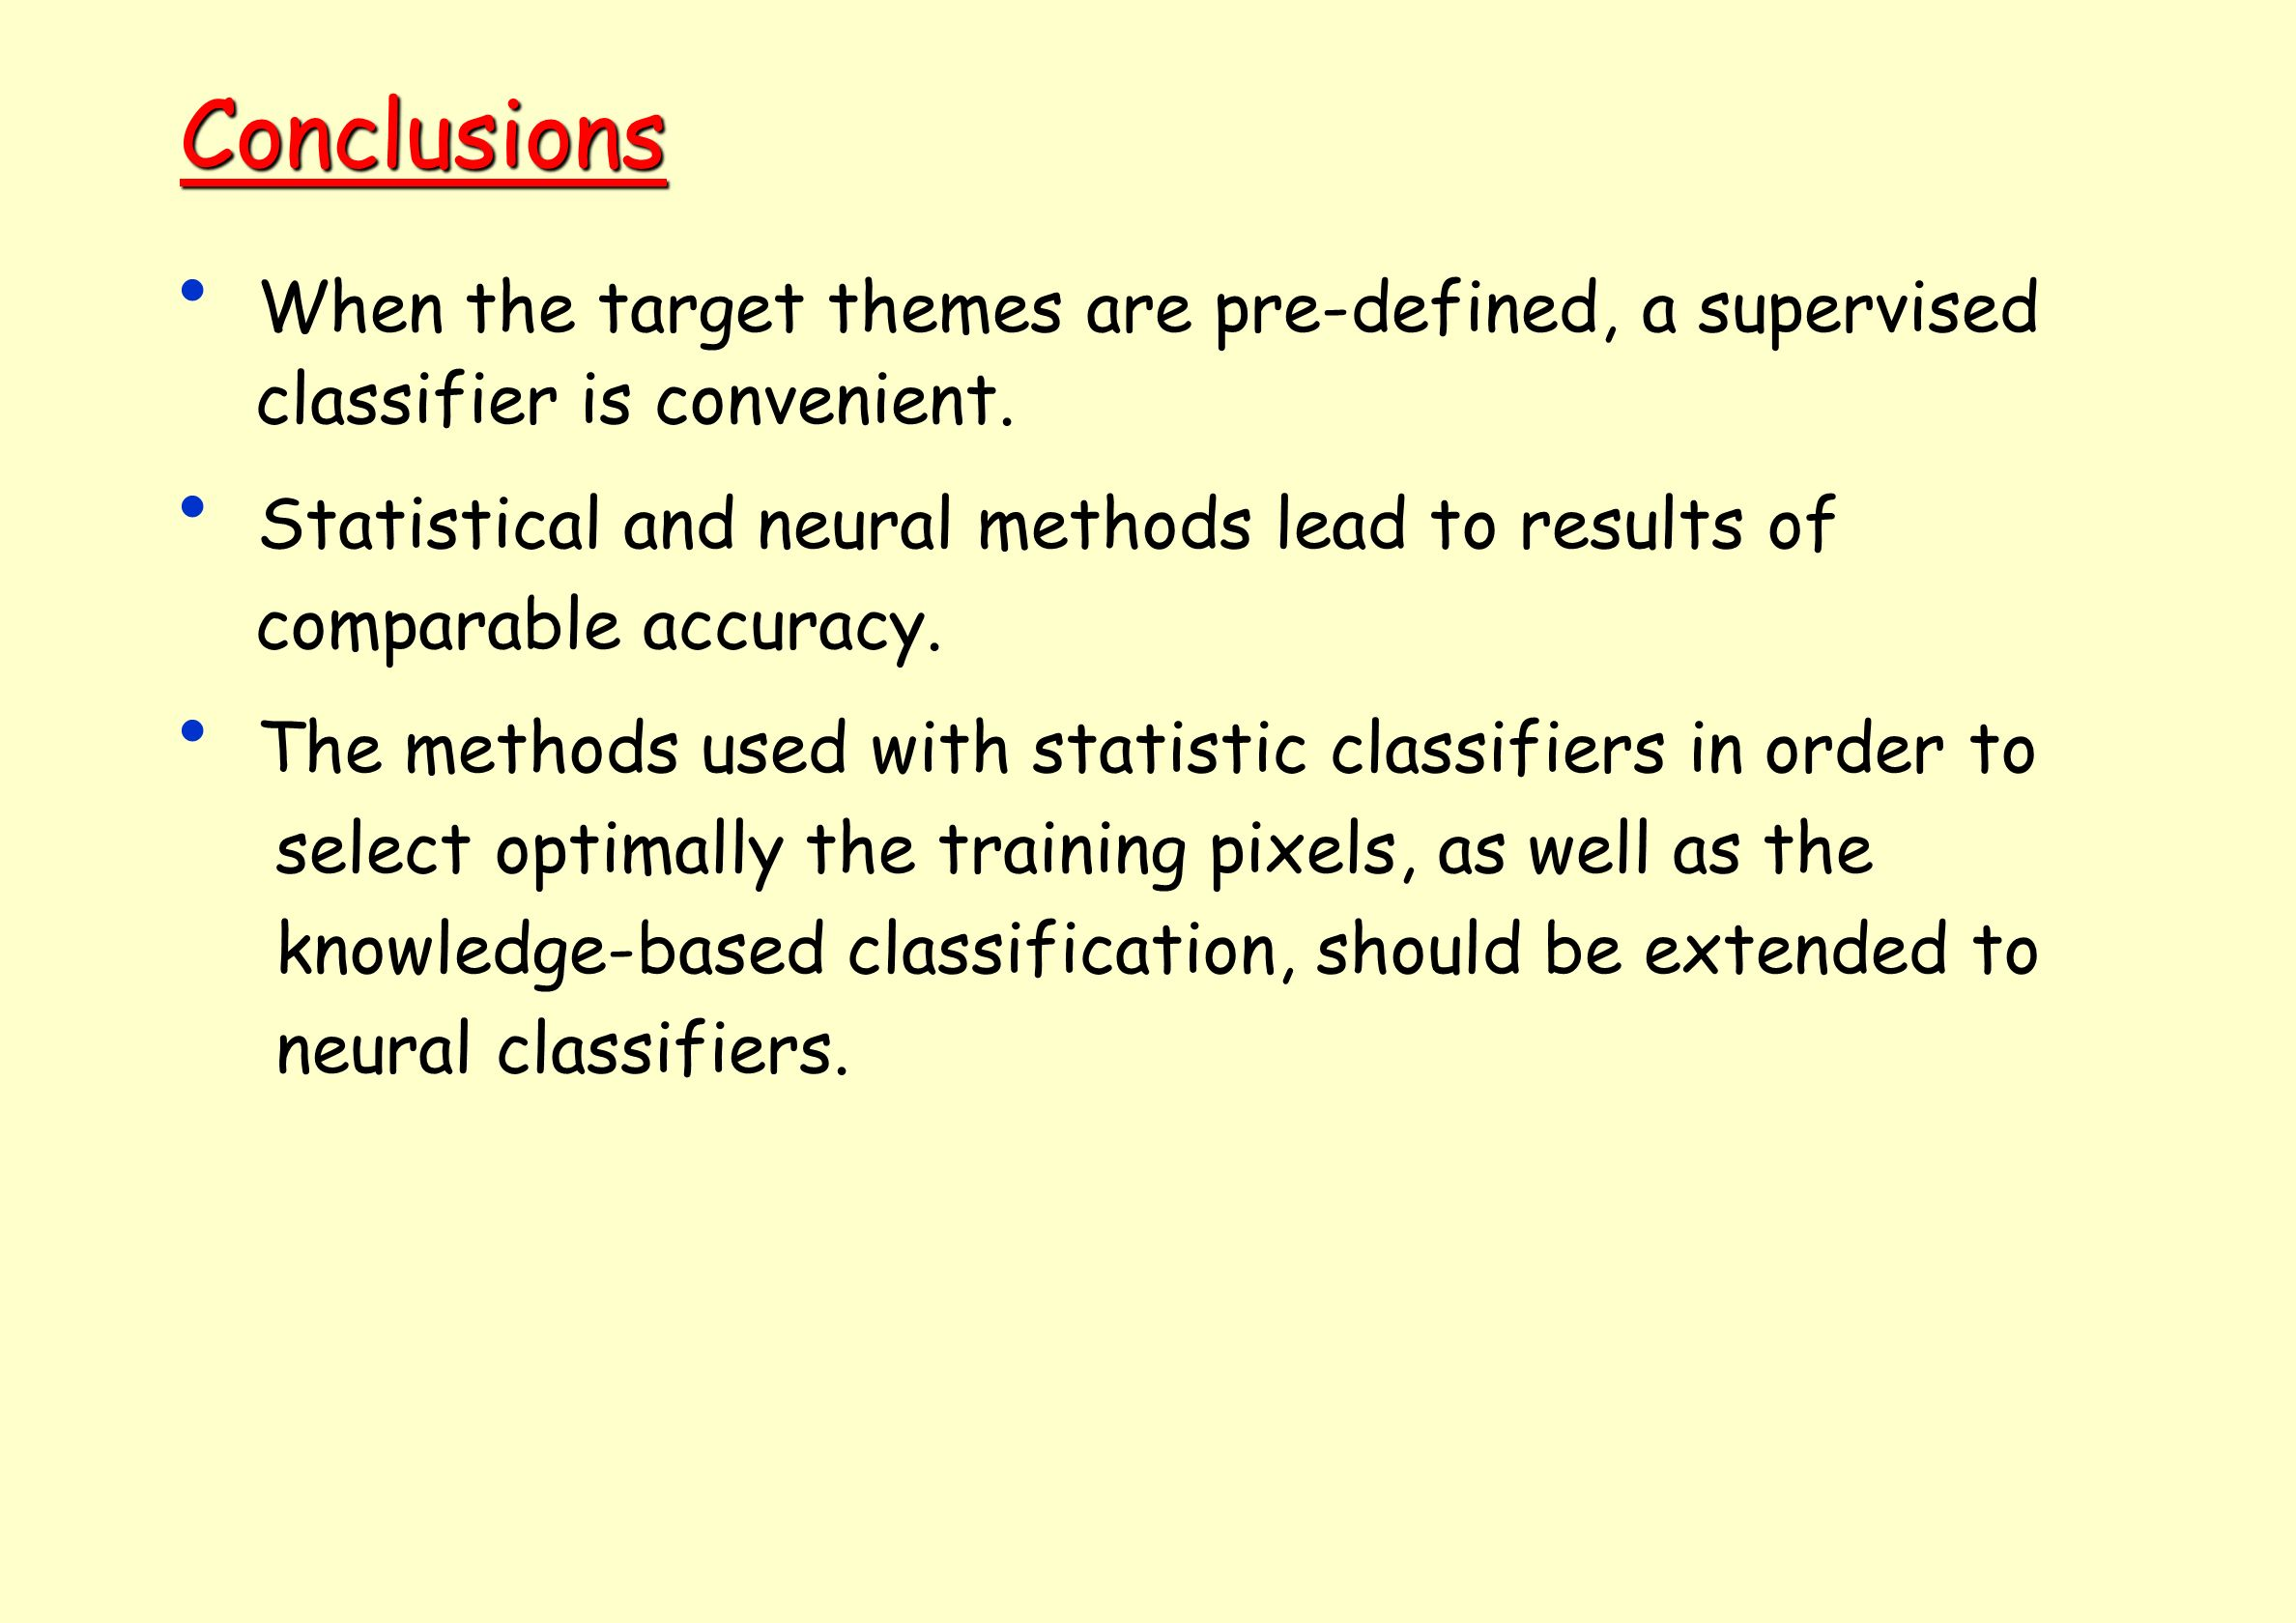 Conclusions When the target themes are pre-defined, a supervised classifier is convenient. Statistical and neural methods lead to results of comparabl